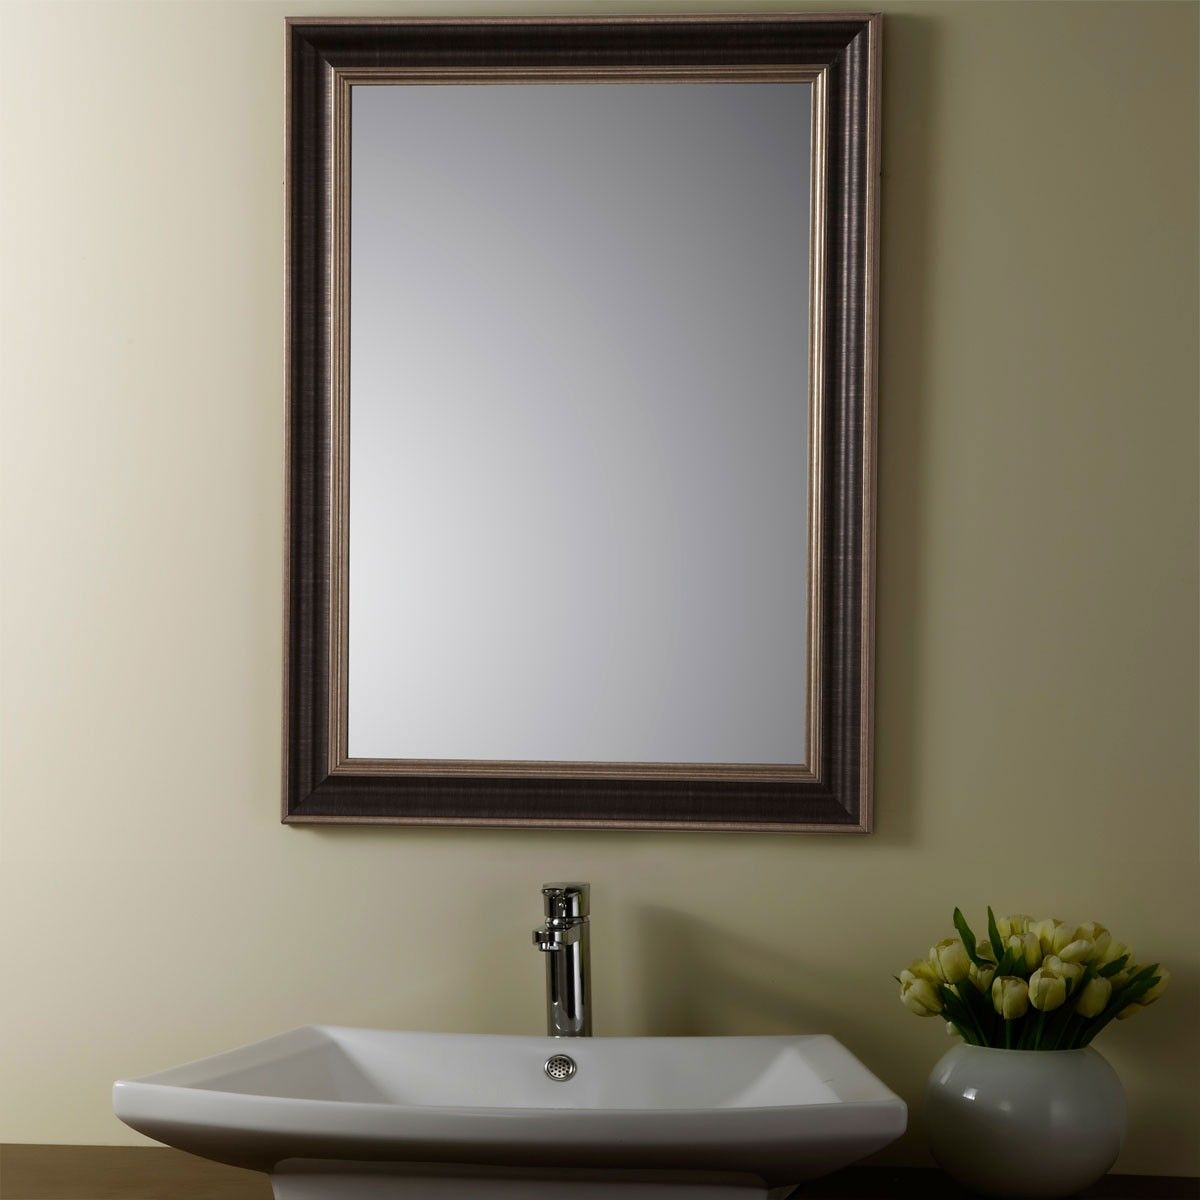 24 x 32 In Reversible Wood-imitation Framed Bathroom Silvered Mirror (YJ-1953H)